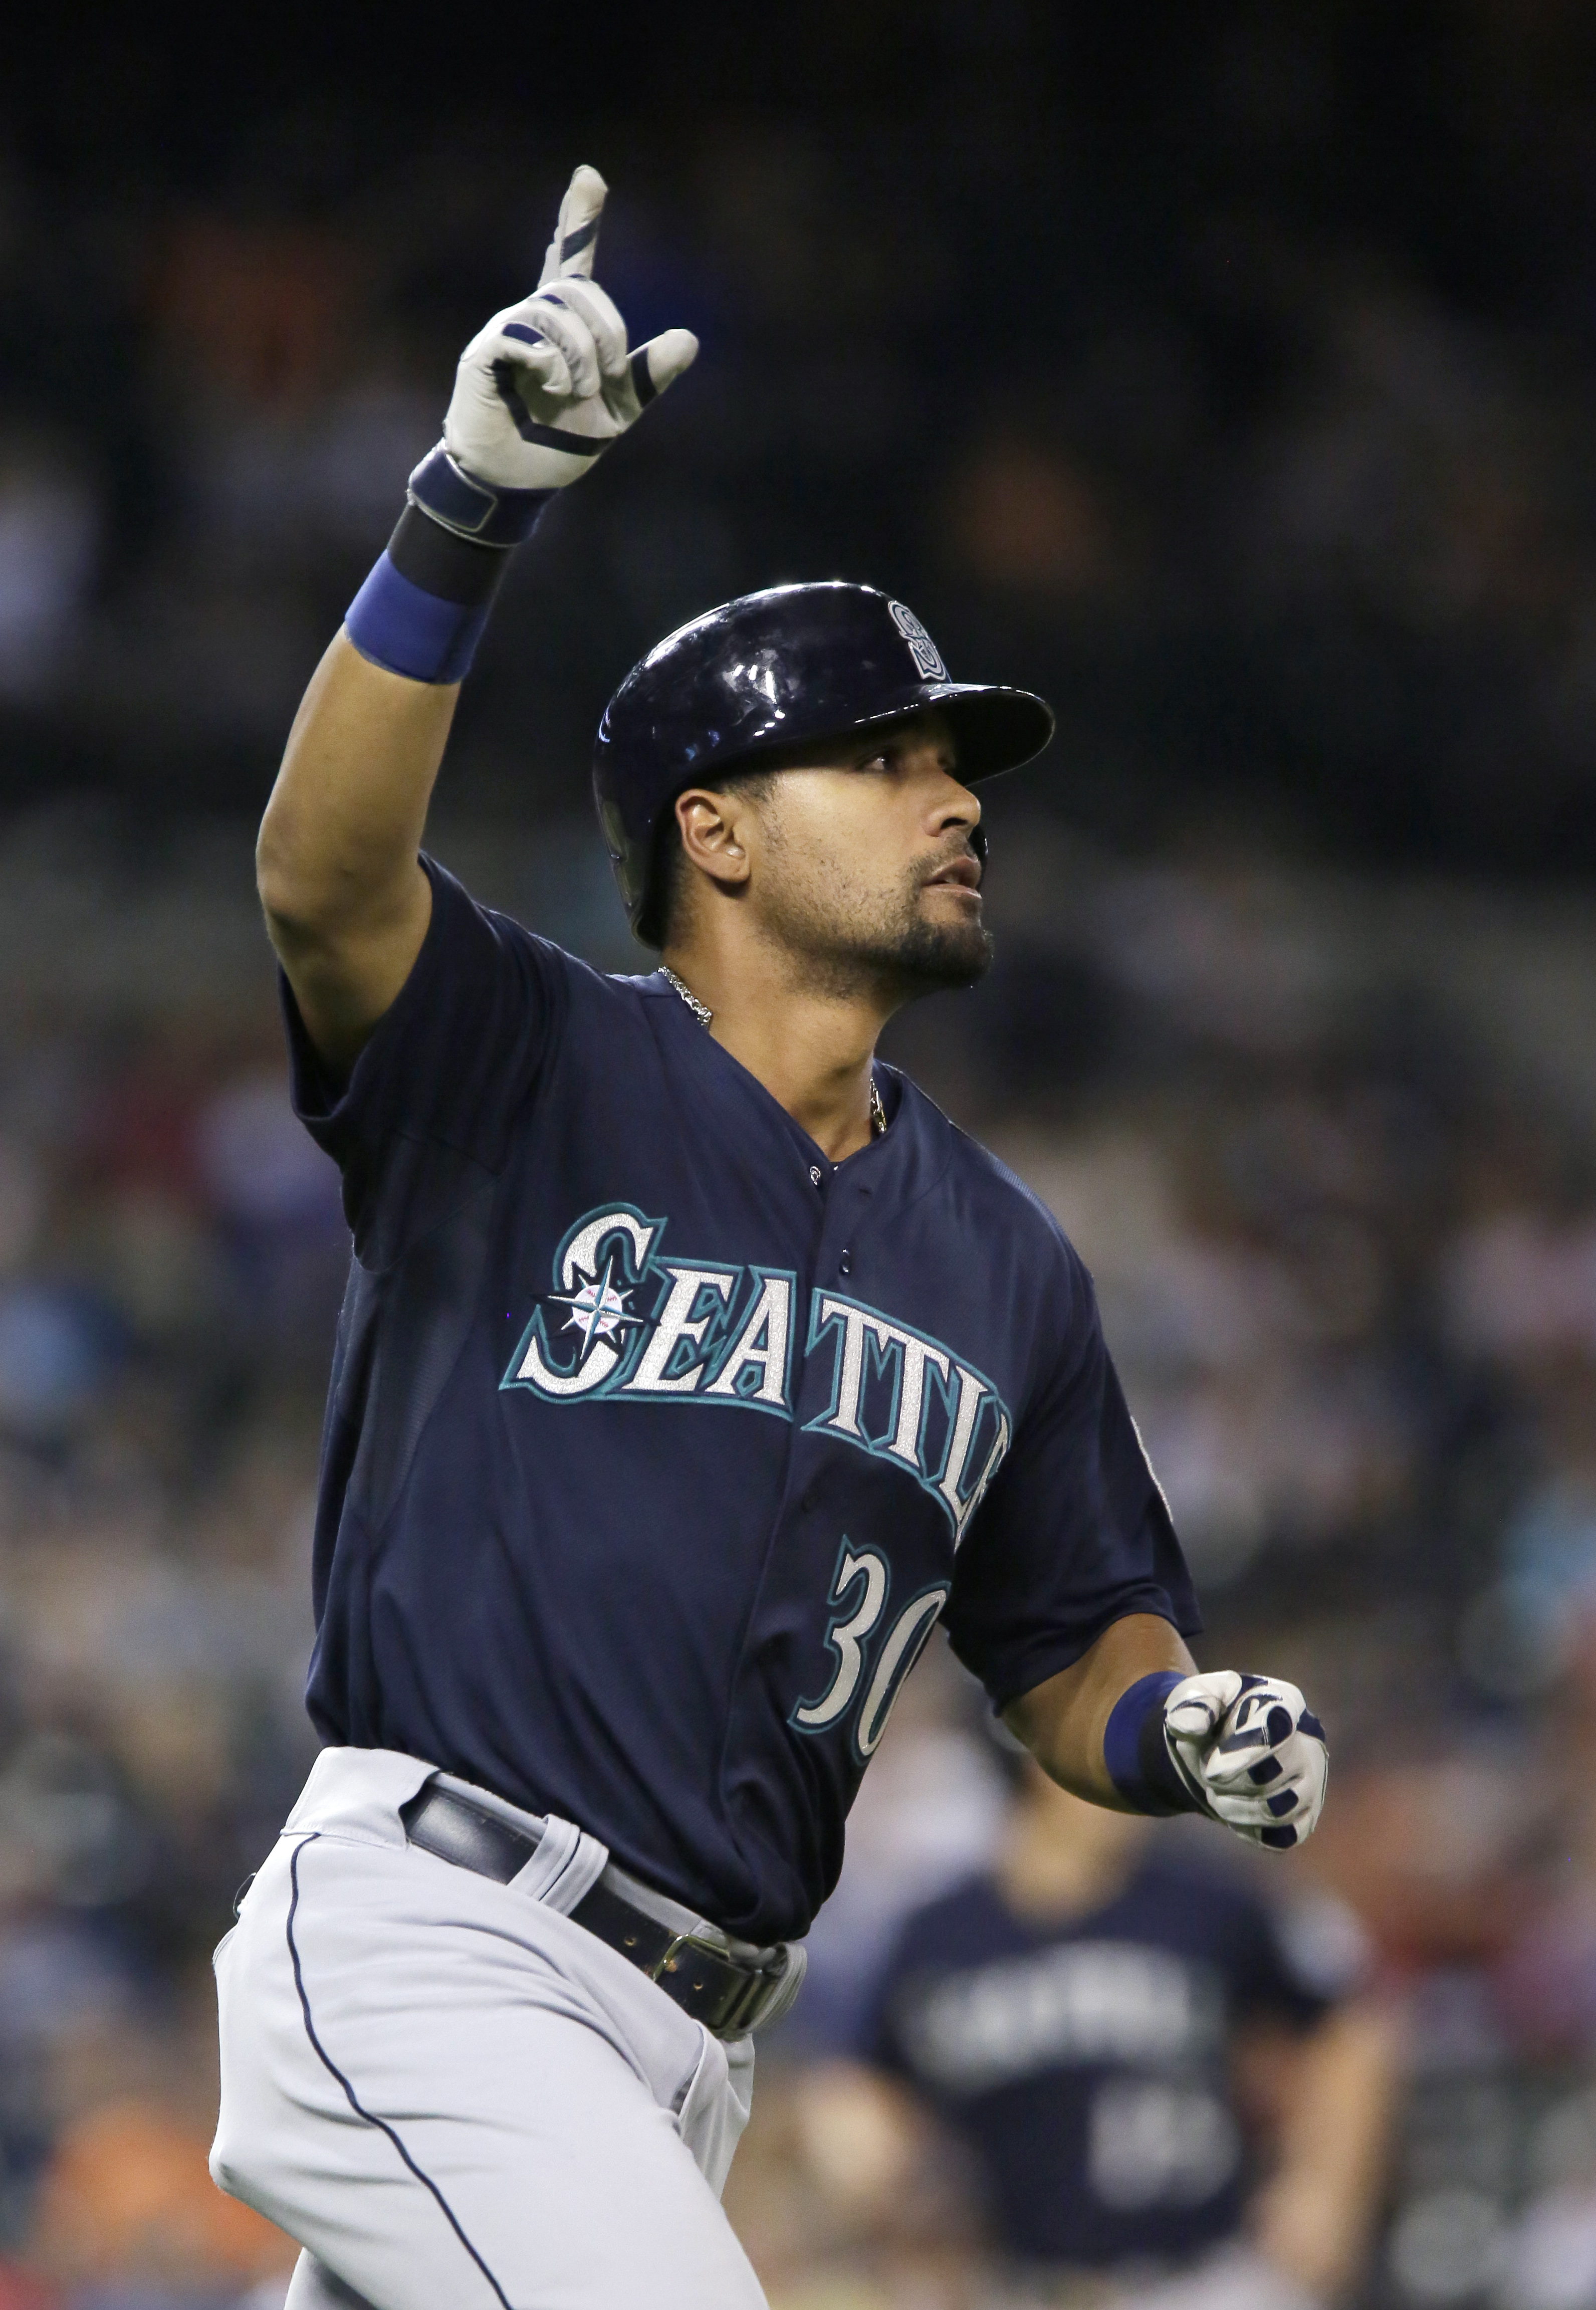 Seattle Mariners' Franklin Gutierrez celebrates as his hit clears the right field wall for a grand slam home run during the eighth inning of a baseball game against the Detroit Tigers Tuesday, July 21, 2015 in Detroit. (AP Photo/Duane Burleson)